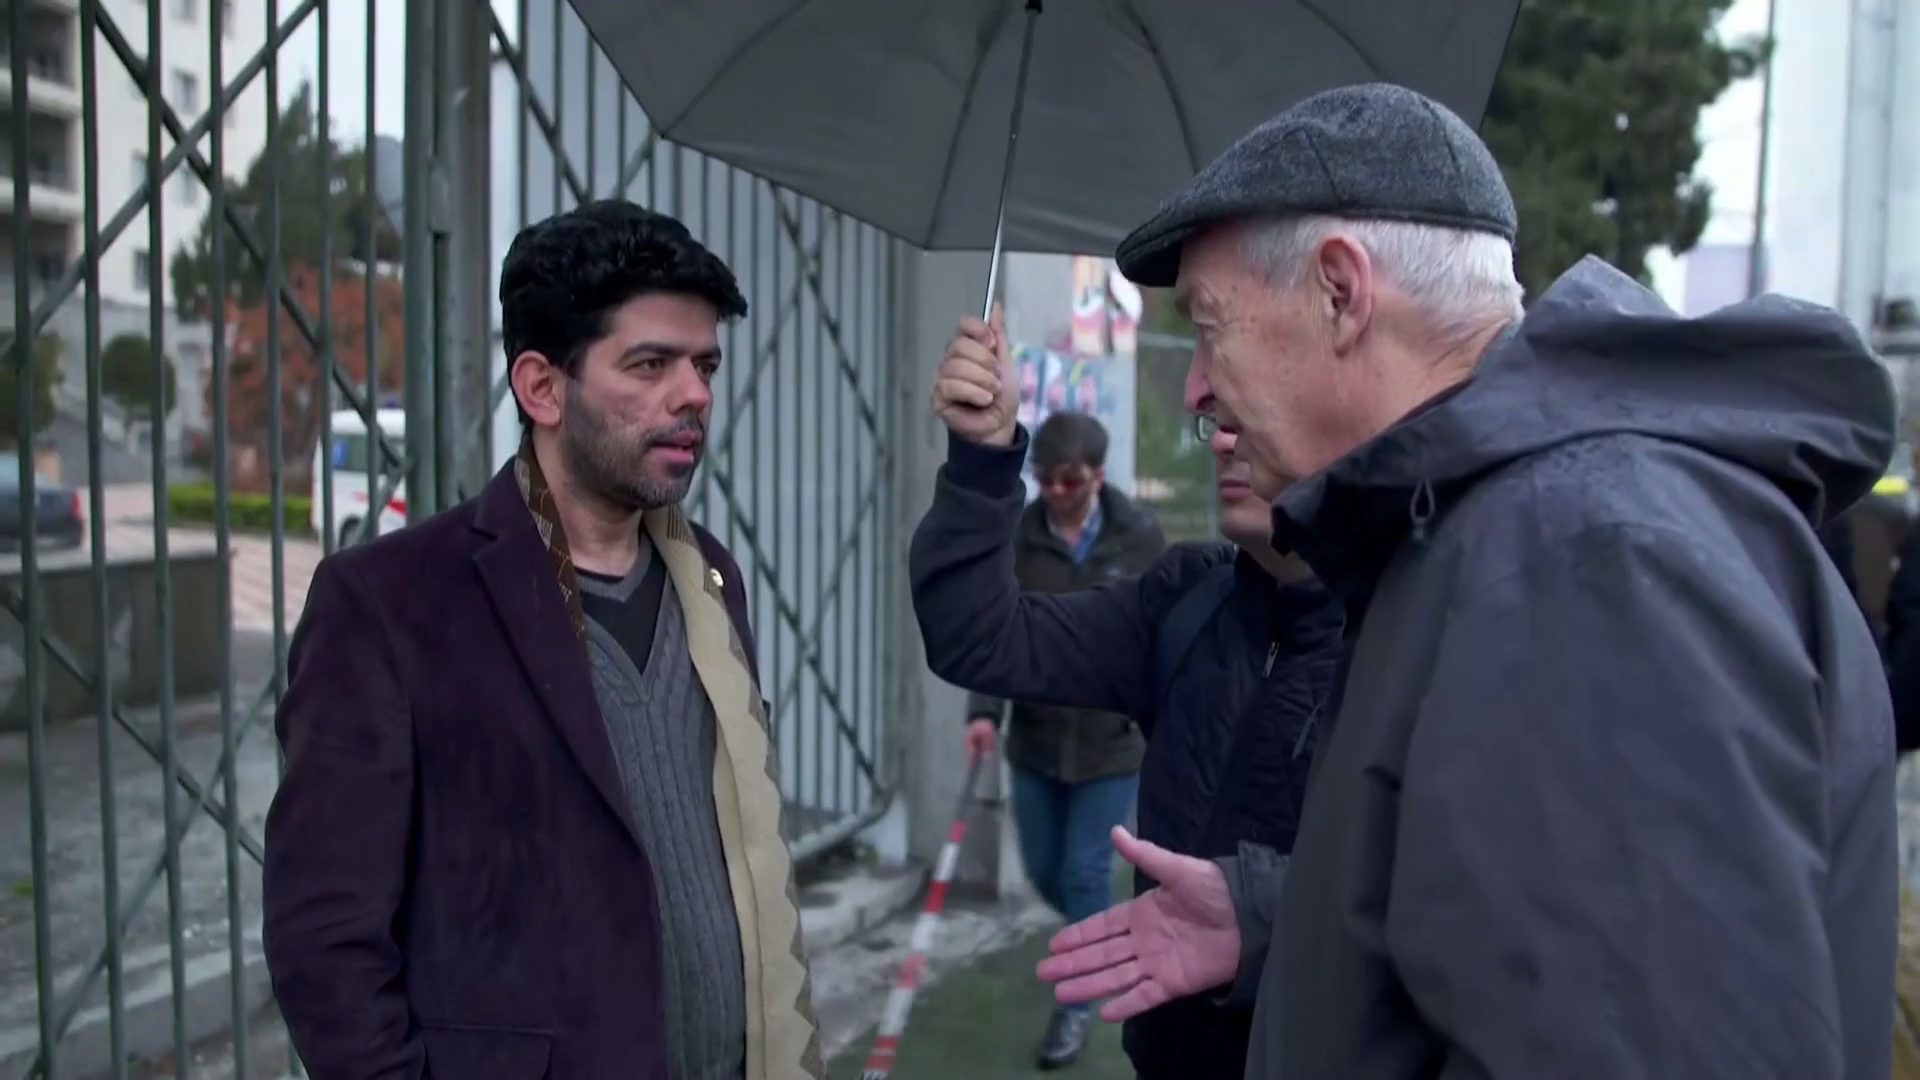 Iranians head to the polls for parliamentary elections – Jon Snow reports from Tehran